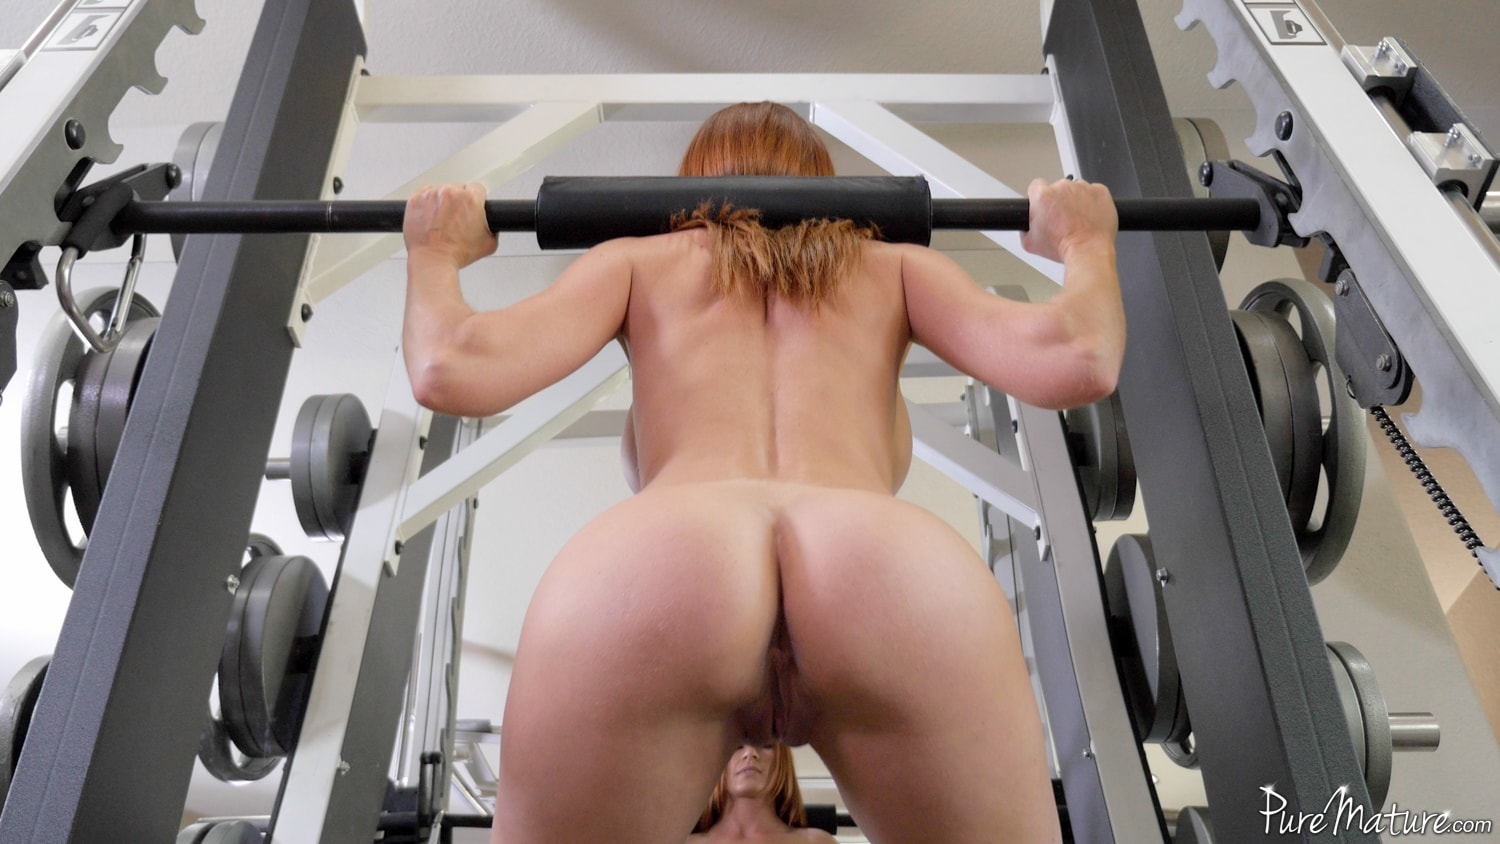 Milf Workout Nude Dare